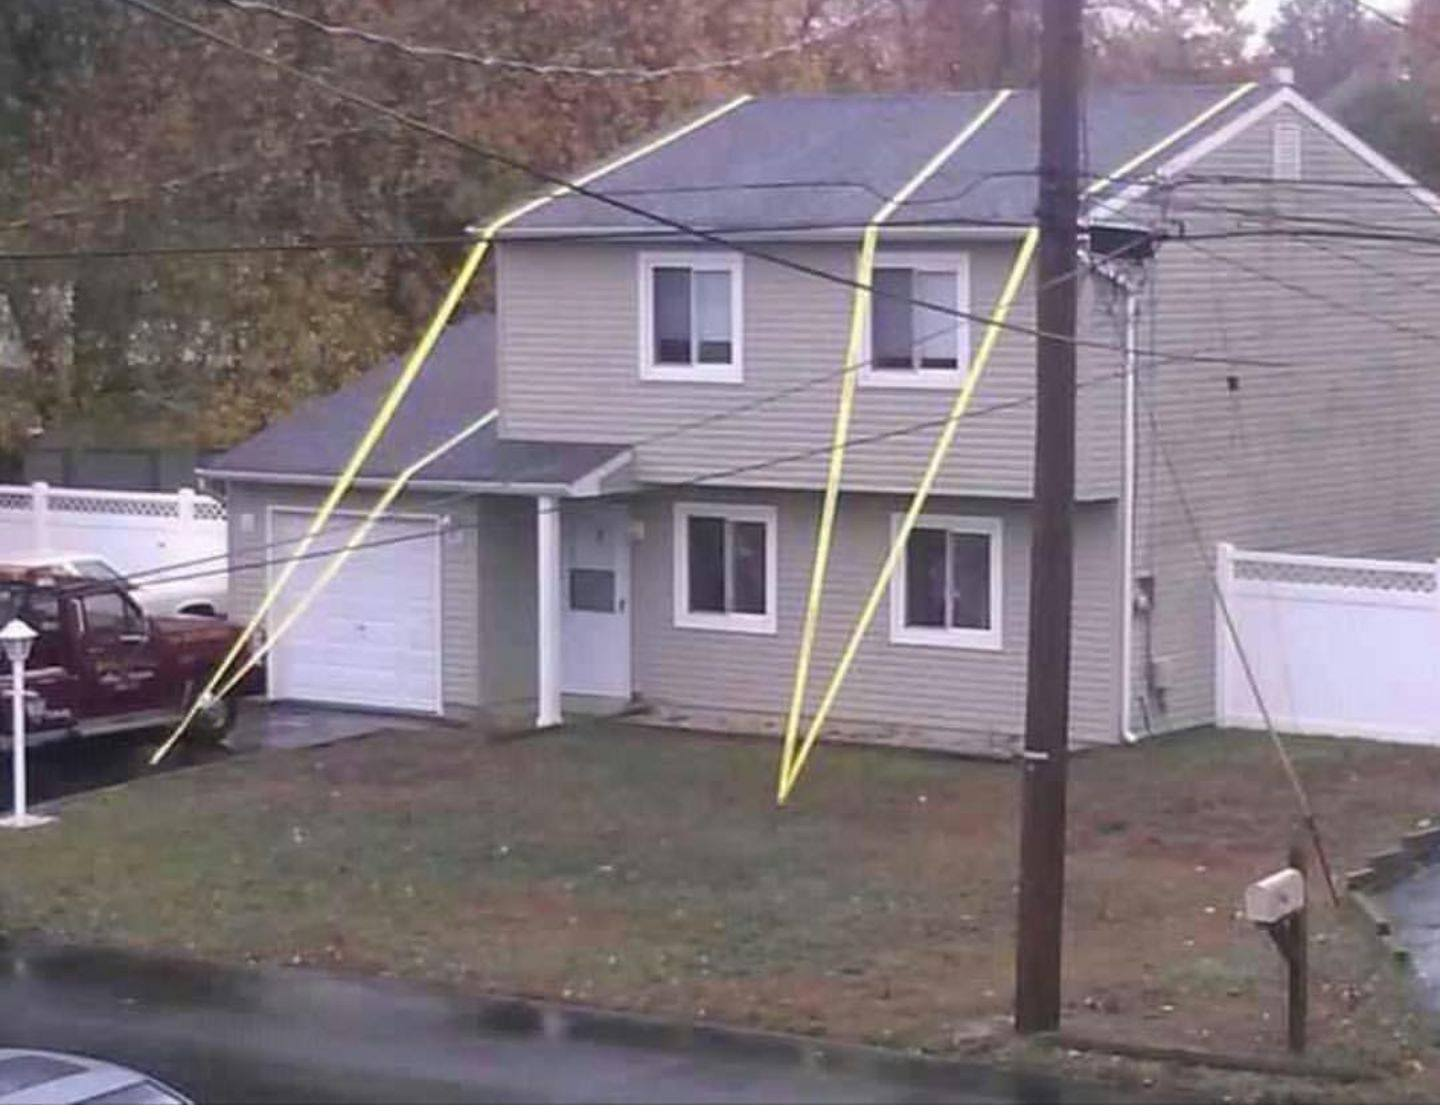 The neighbors are ready for Hurrican Irma.